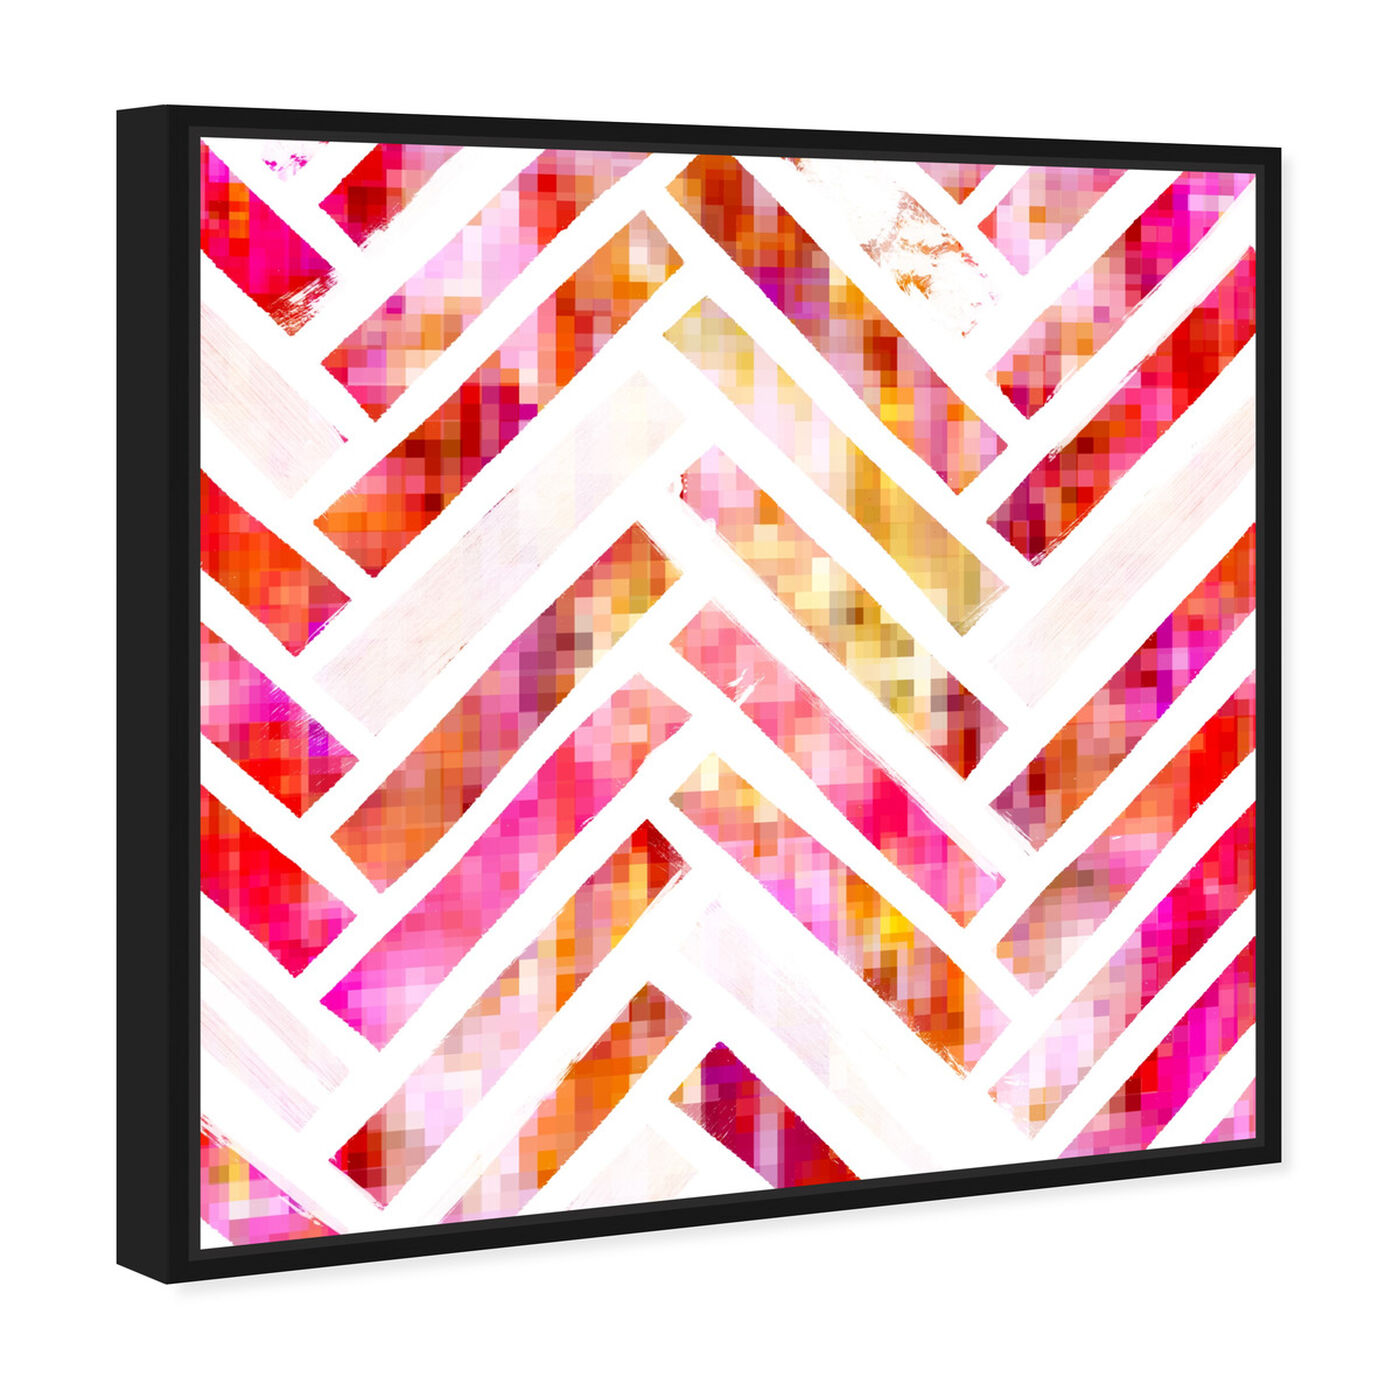 Angled view of Sugar Flake Herringbone featuring abstract and patterns art.